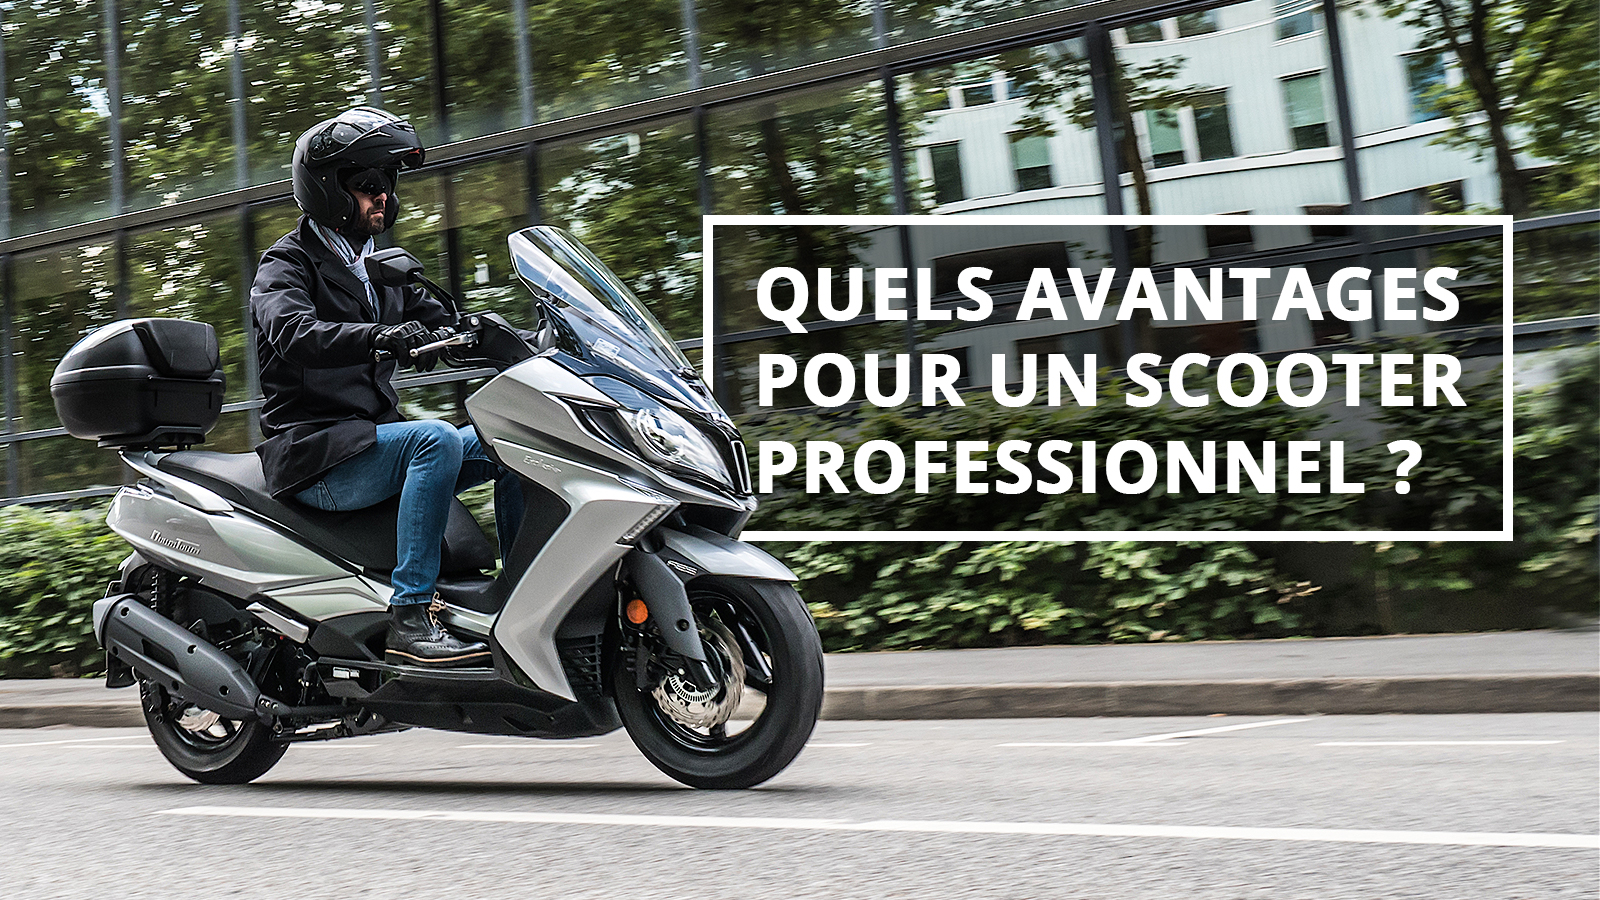 avantages-scooter-pro-featured